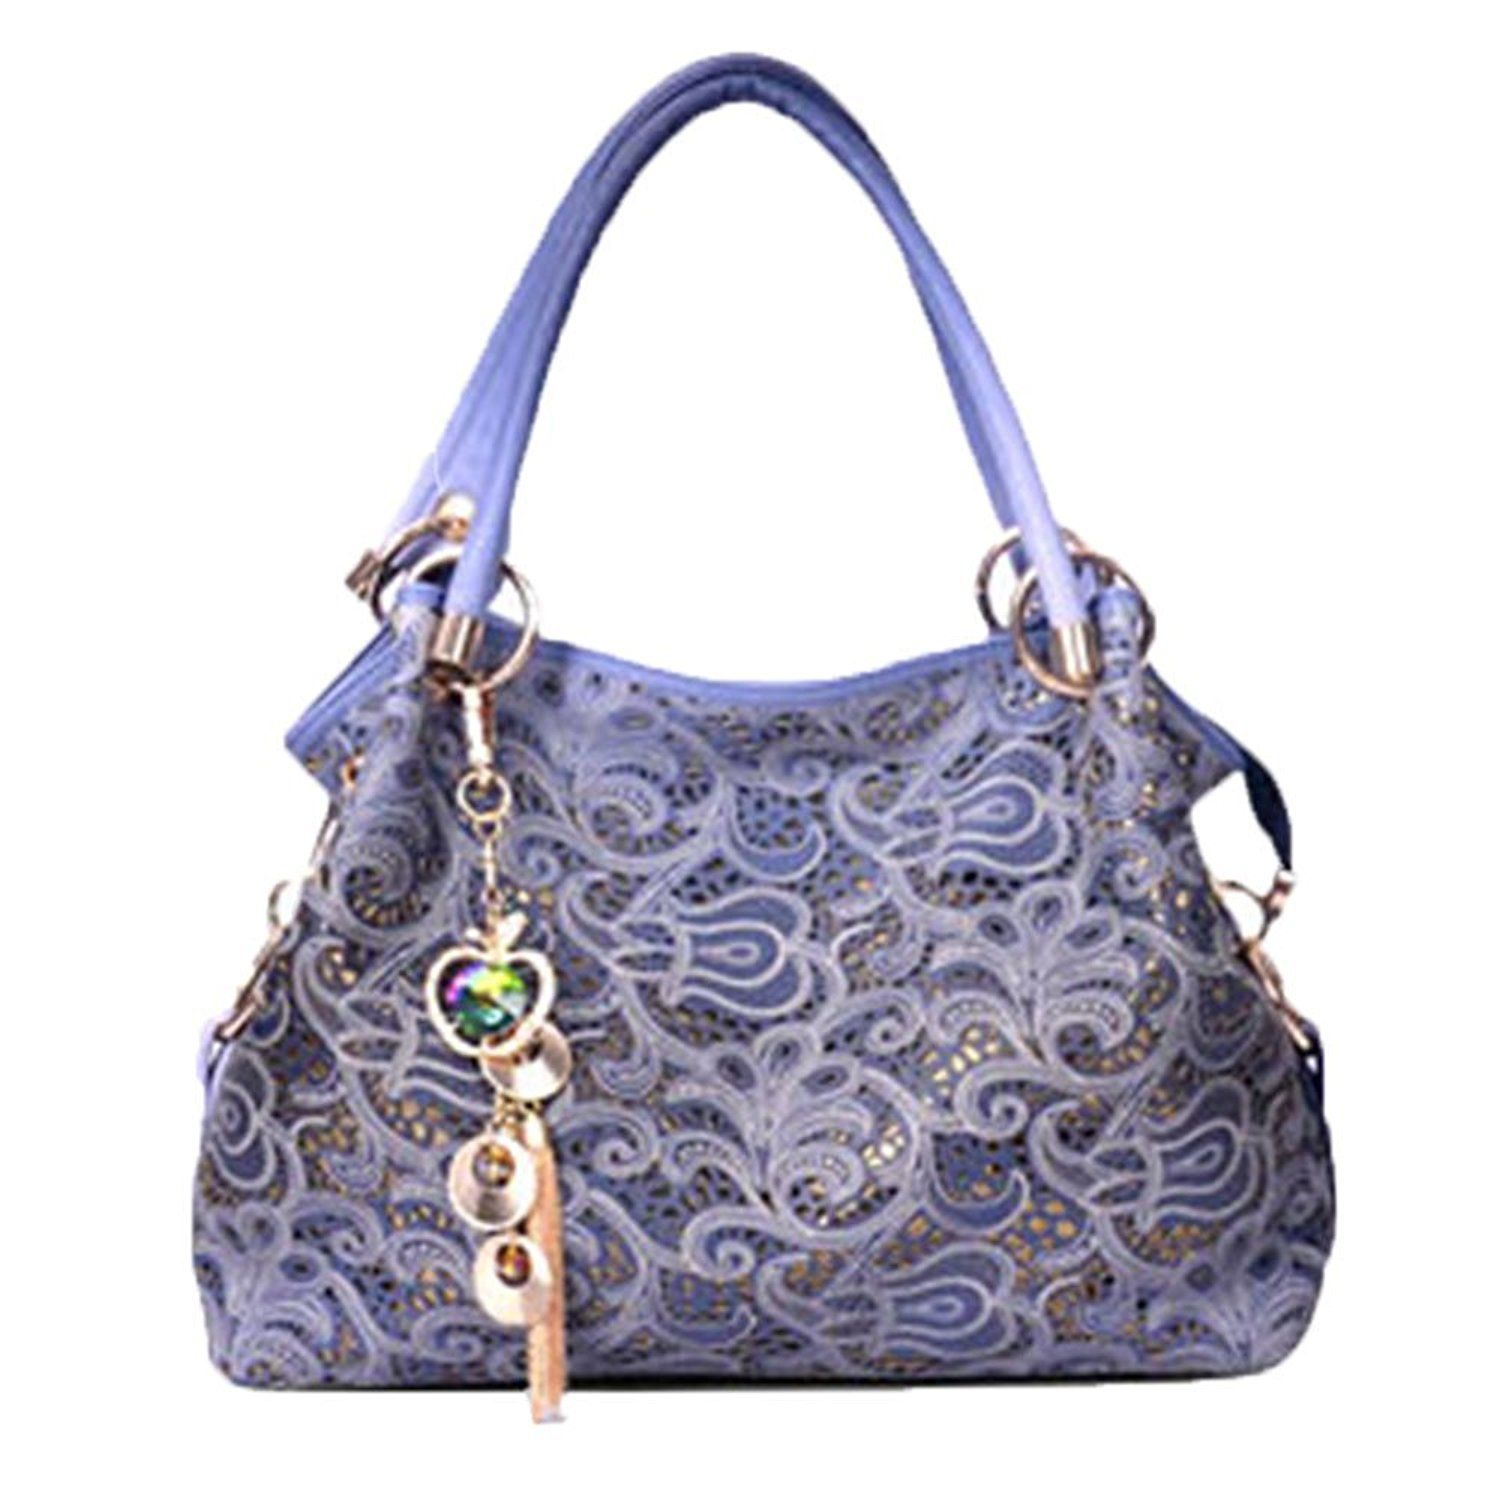 Flada Ladies Leather Hobo Handbags Clearance Tote Bags Purses for Women d4108c108fda2